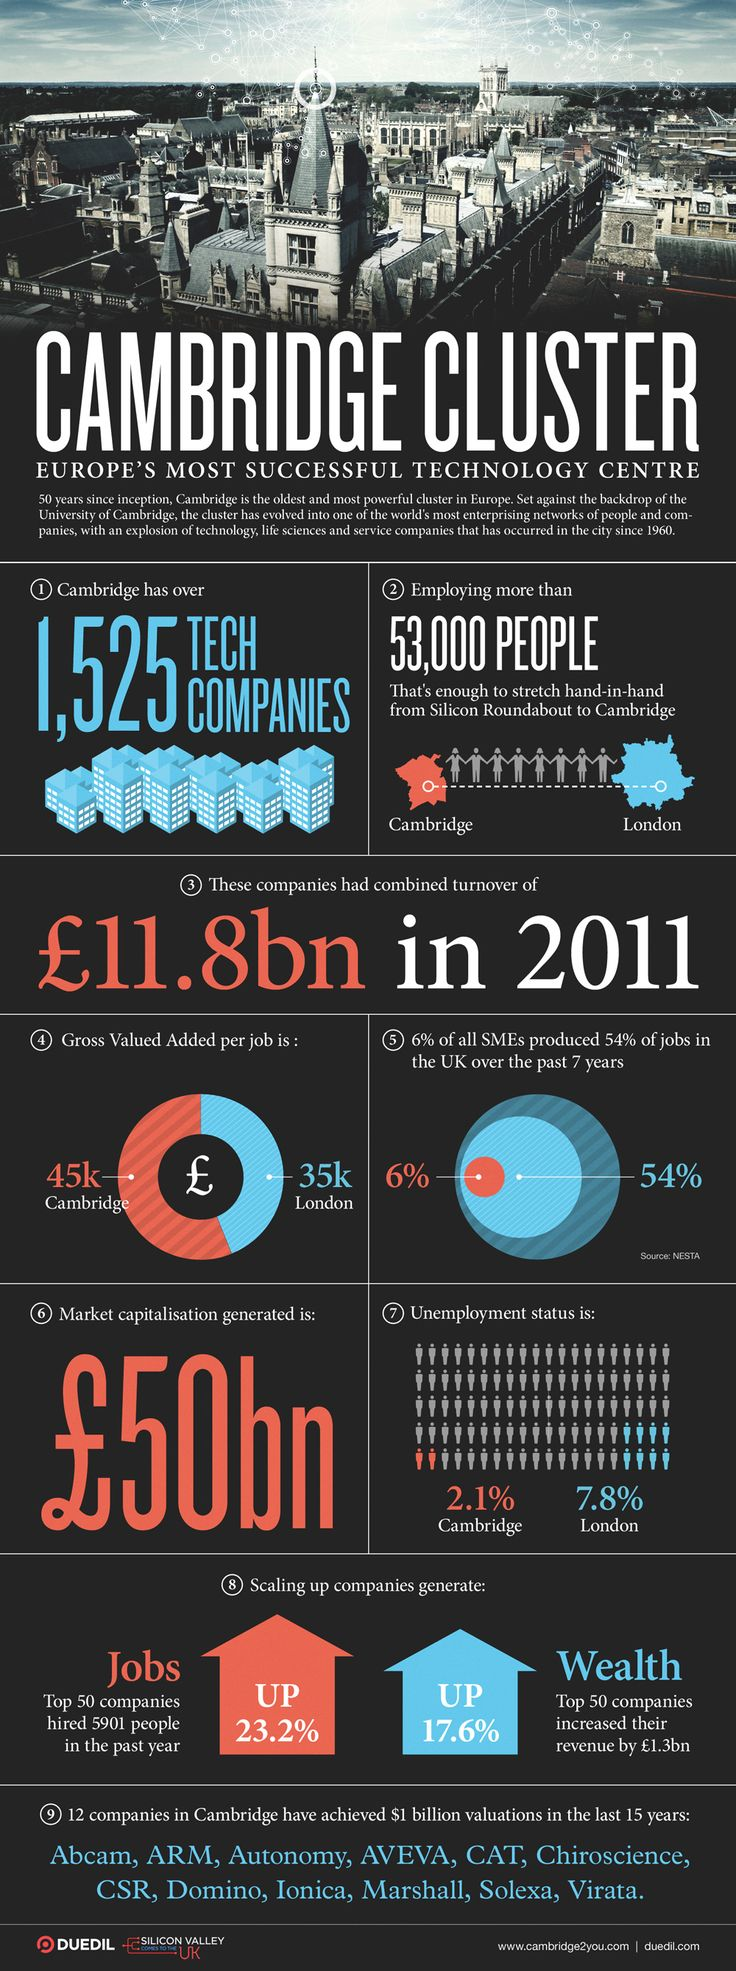 Cambridge Cluster, Europe's most successful tech centre #infographic